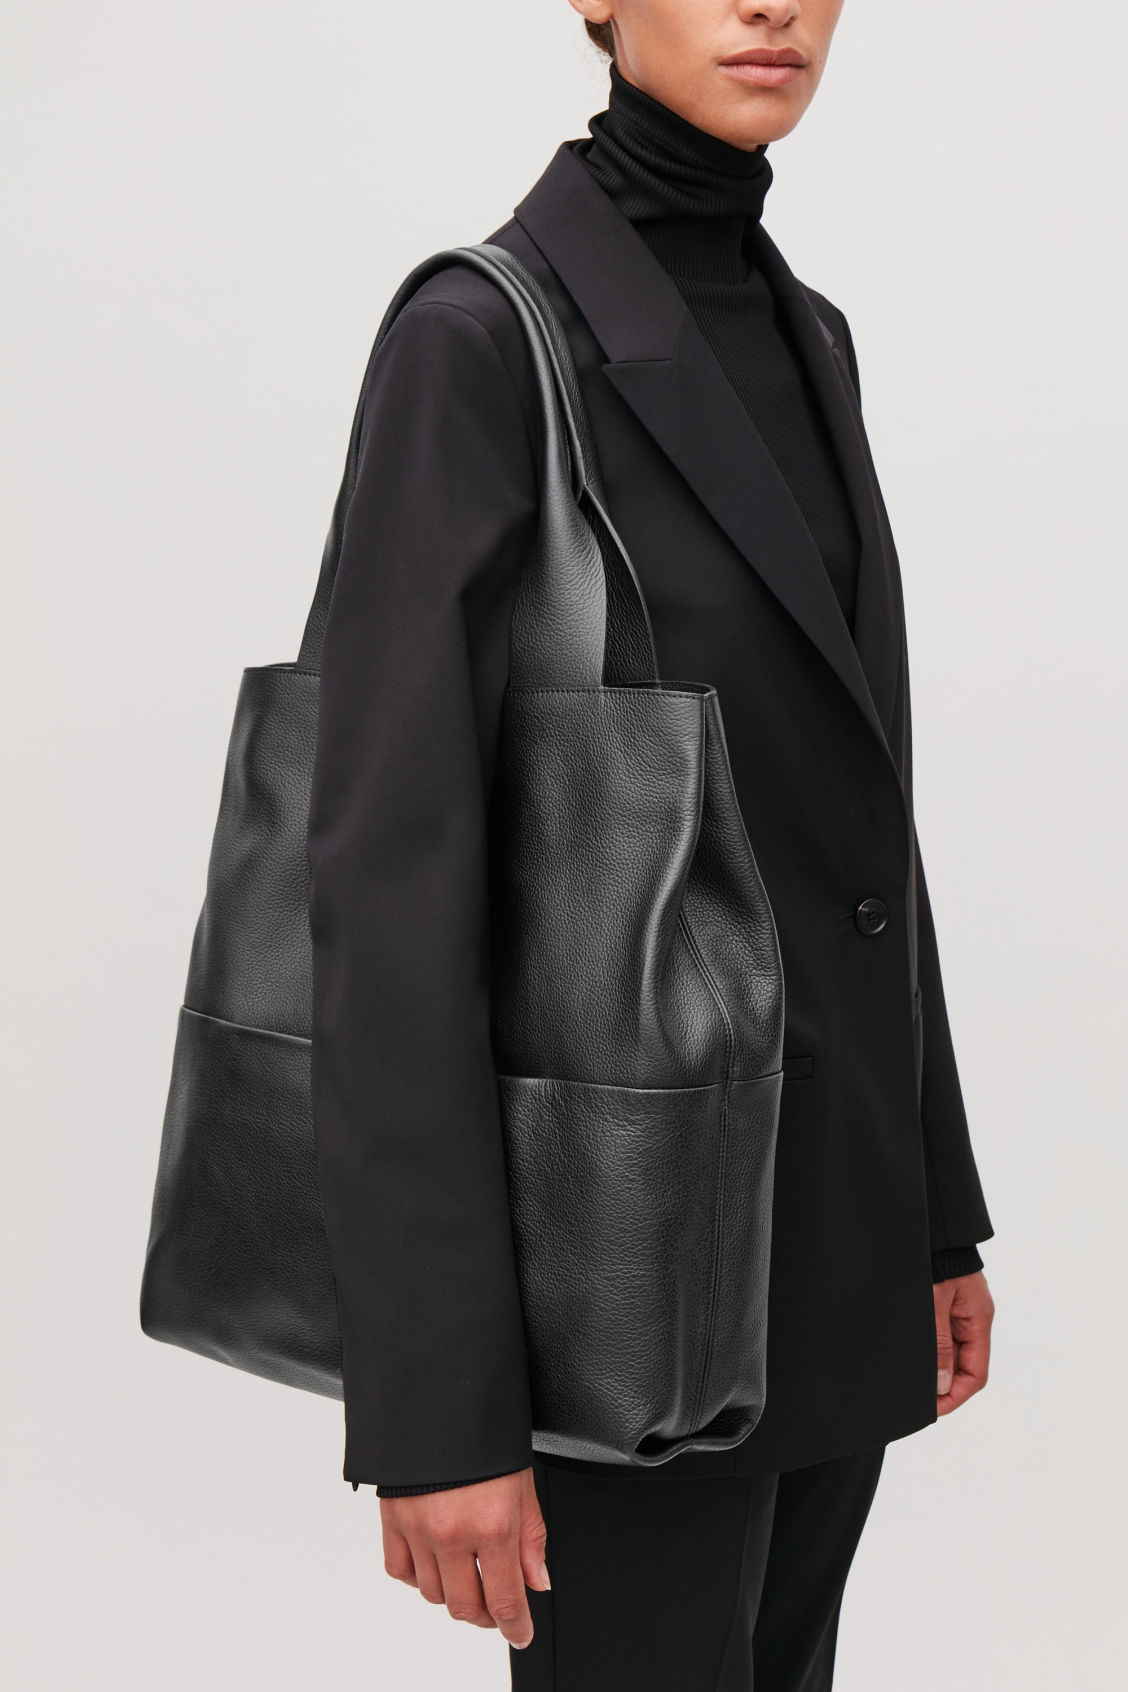 Detailed image of Cos large grained leather bag in black e04731166c9d2